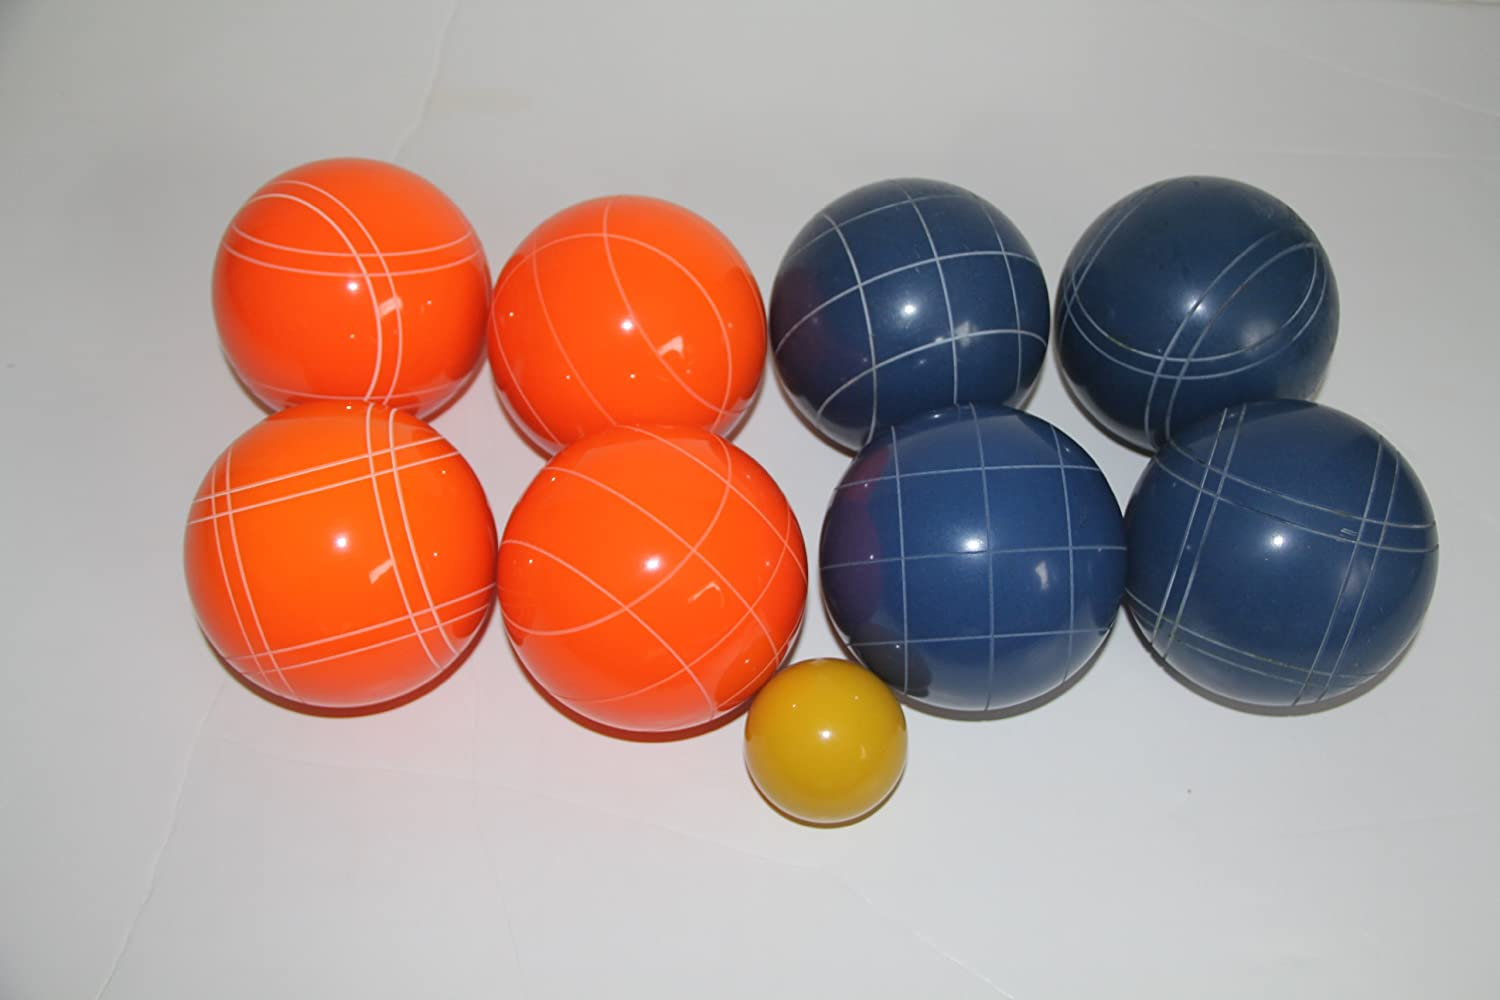 Premium Quality EPCO Tournament Bocce Set – 107mm Blue and Orange Bocce Balls… kaufen